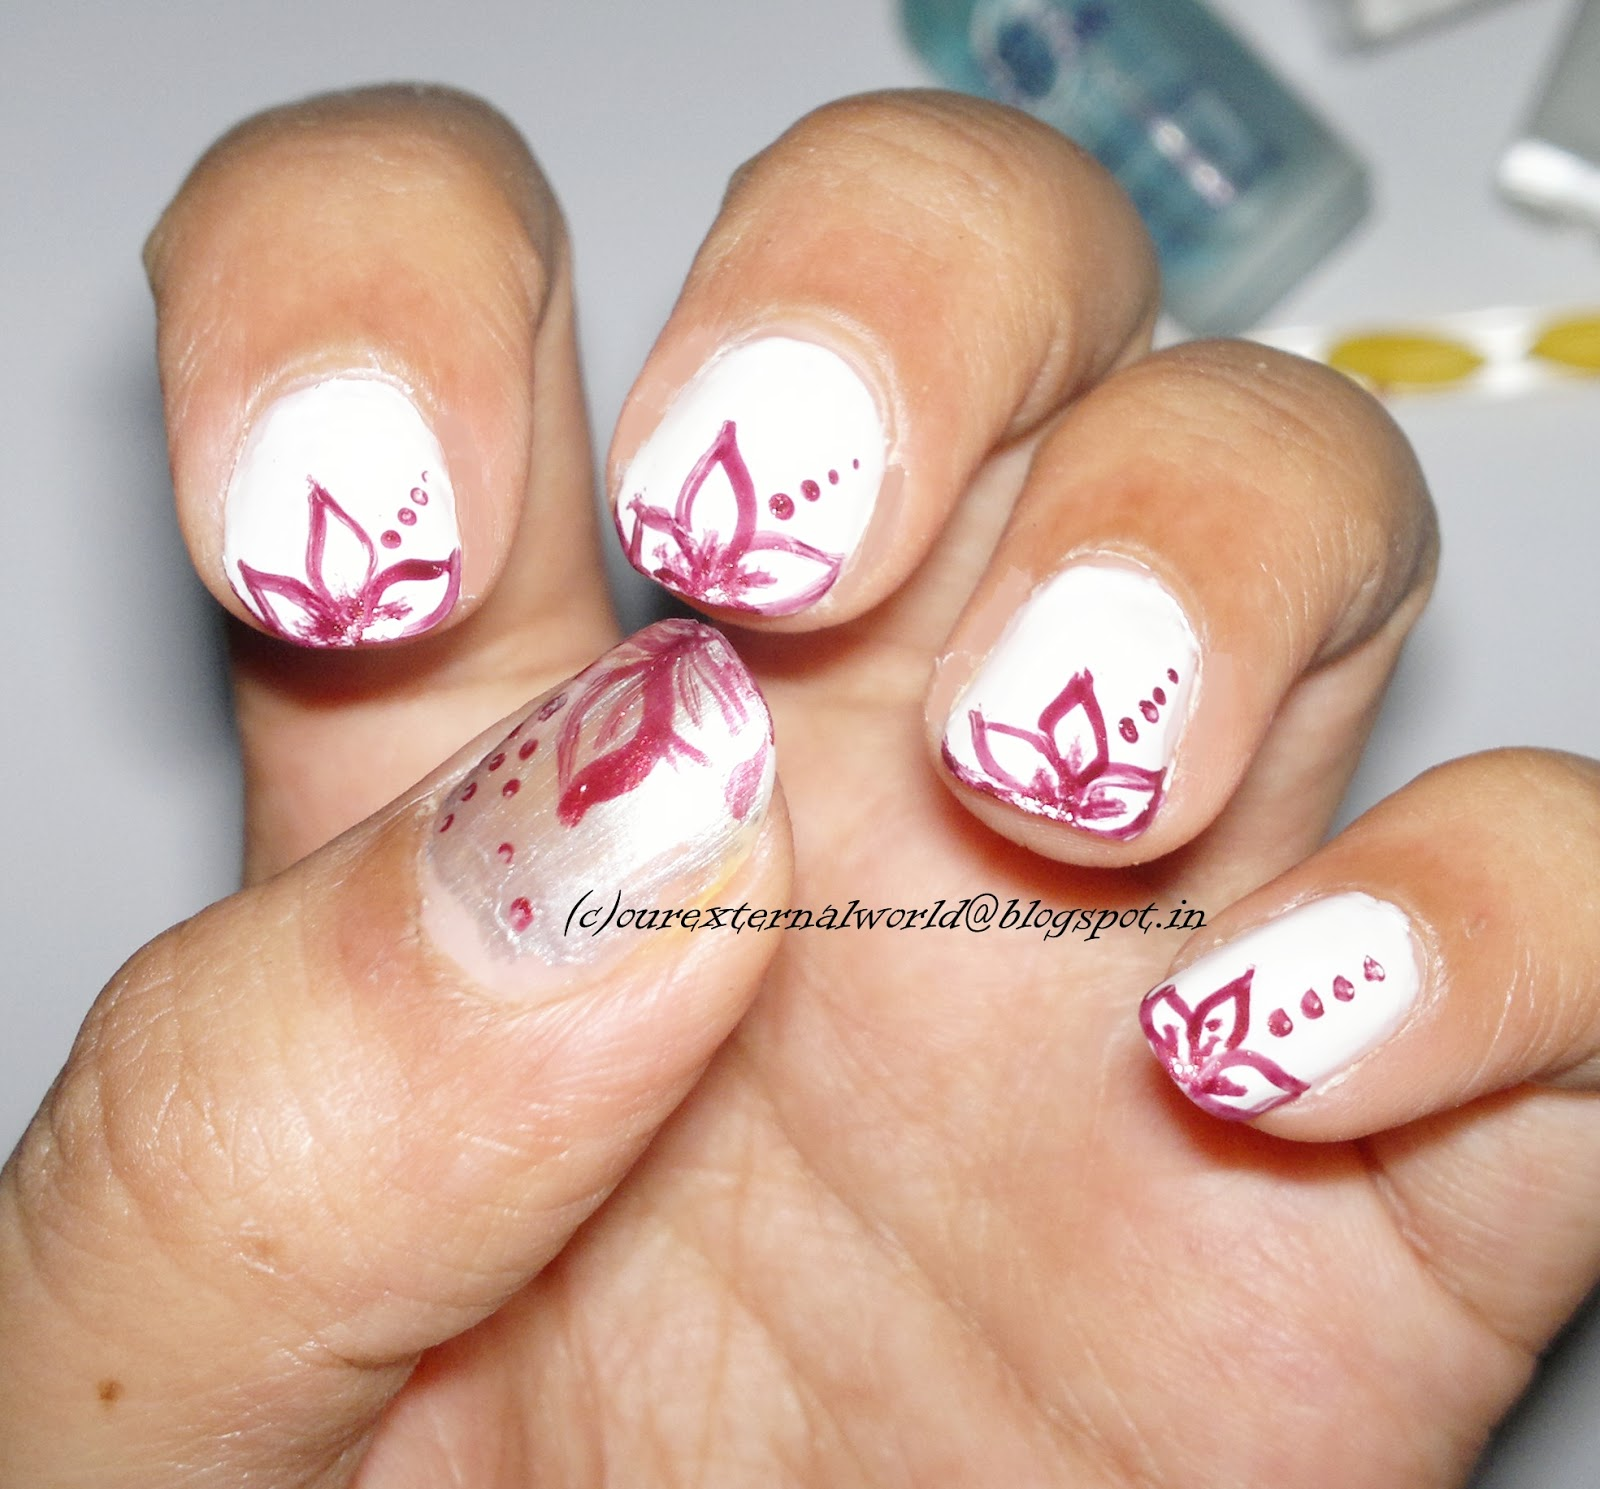 Girly Girl Nail Art Challenge - 3 - Delicate and Elegant - Floral ...